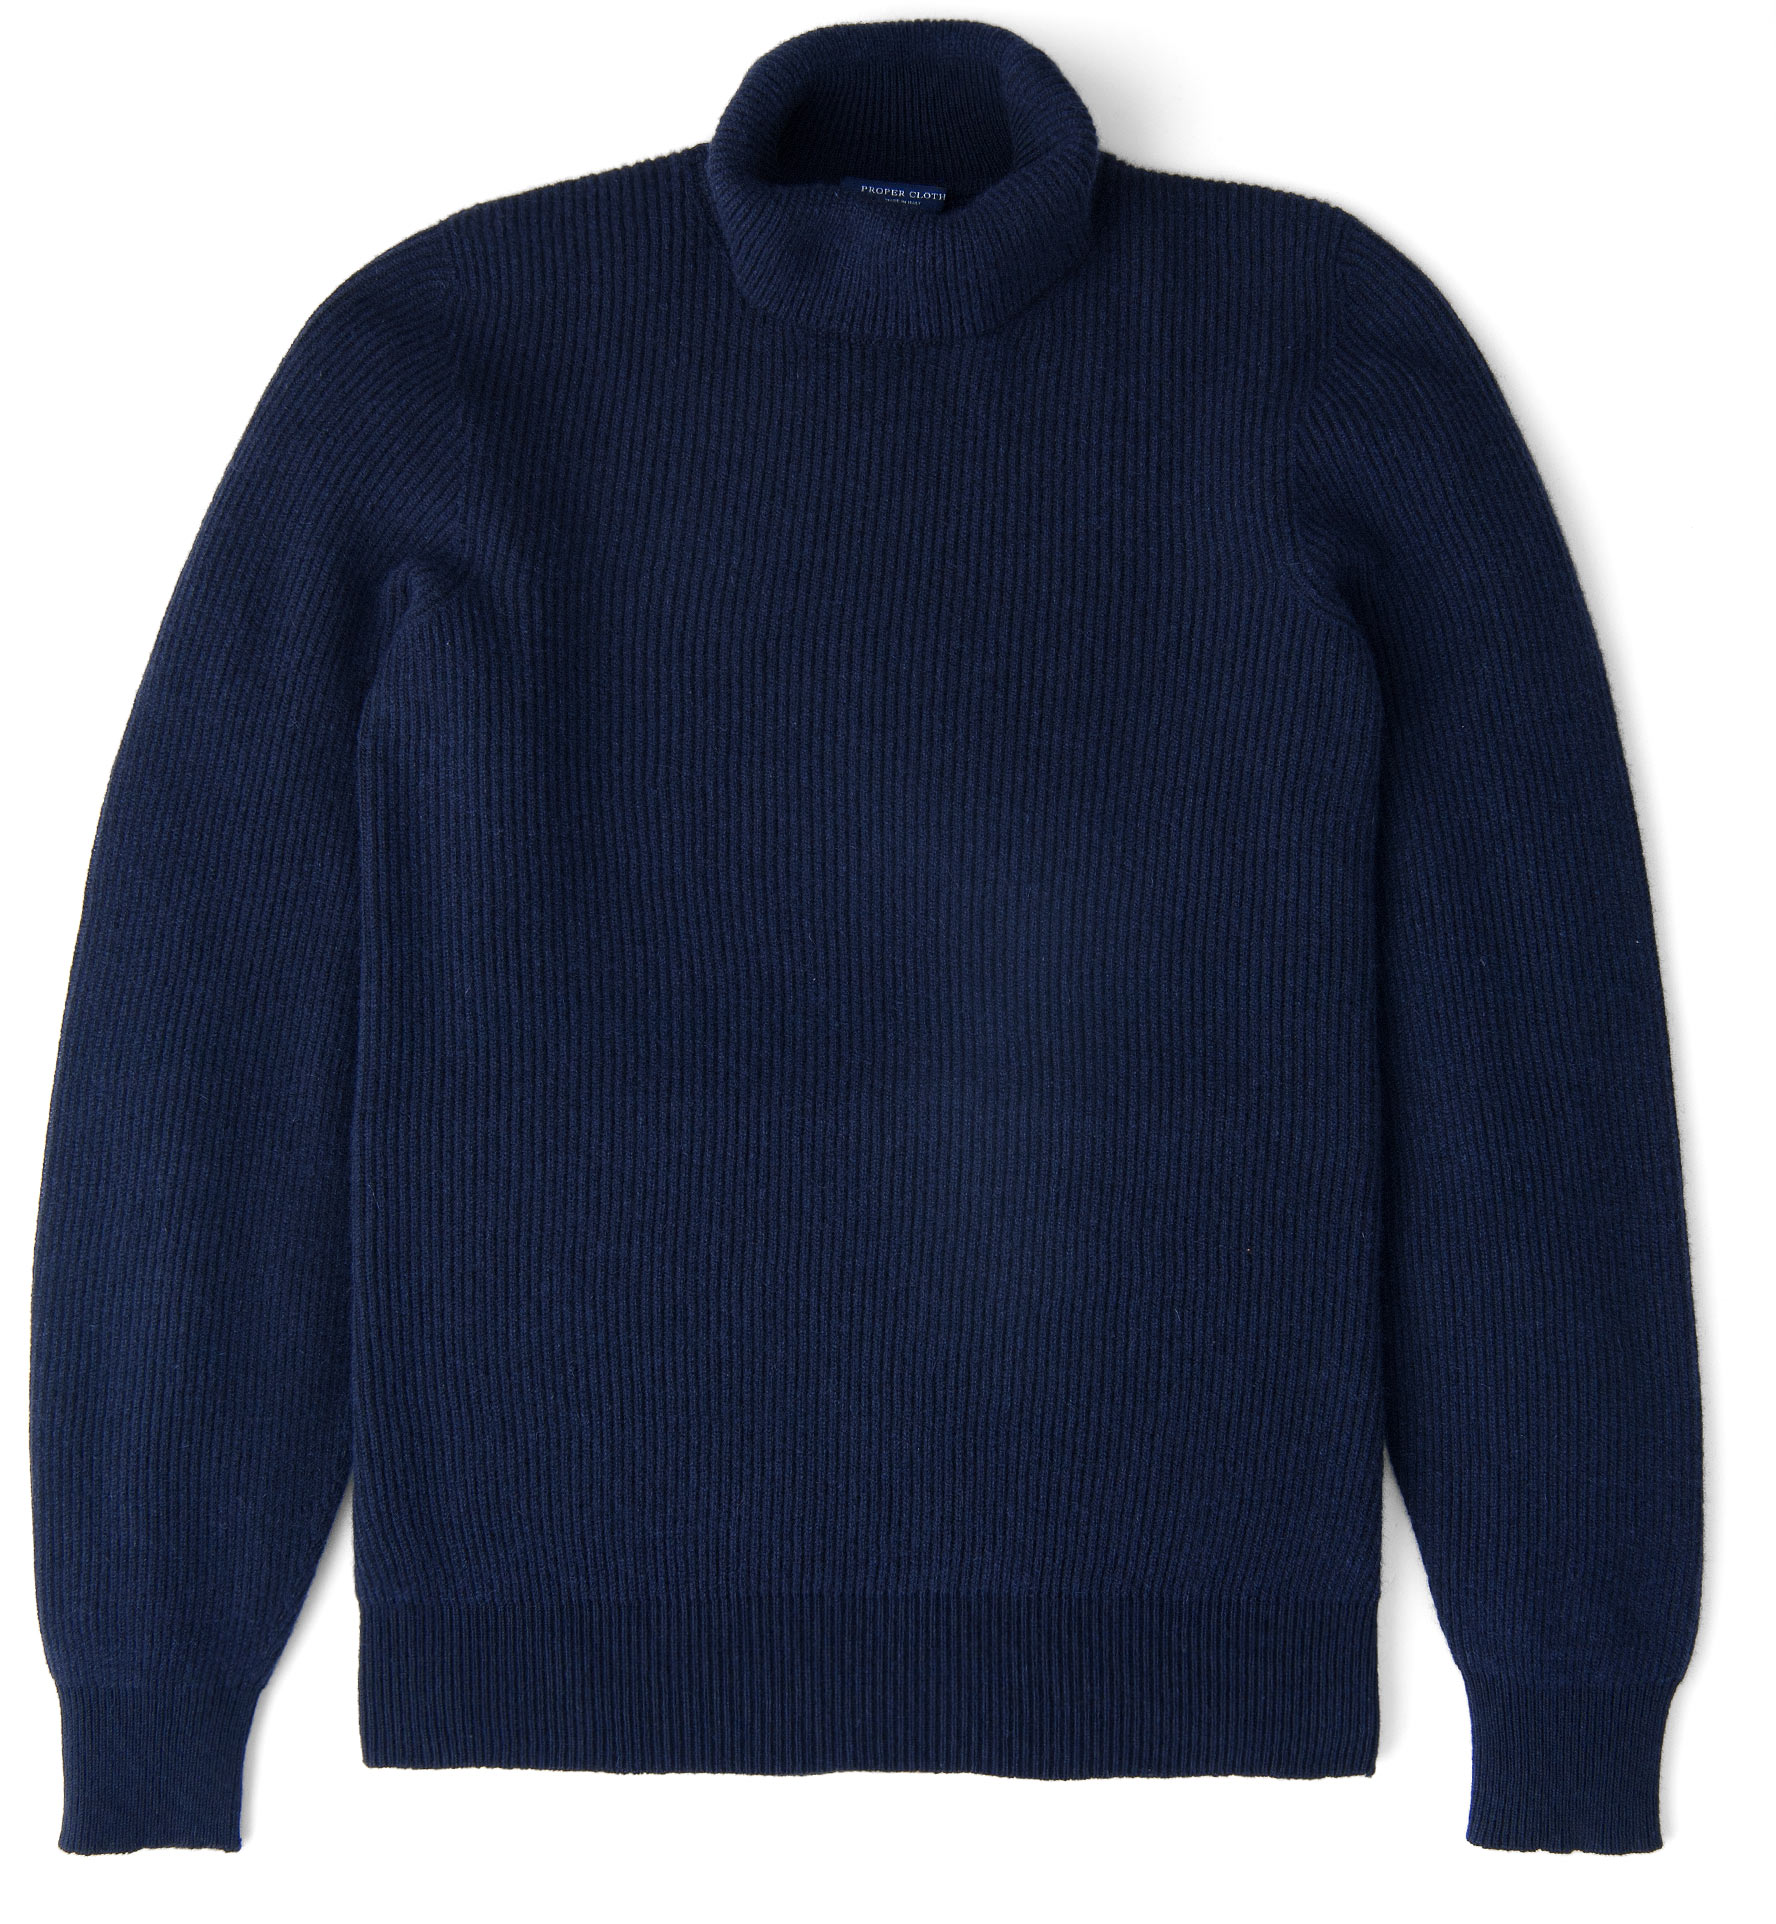 Zoom Image of Navy Ribbed Cotton and Cashmere Rollneck Sweater